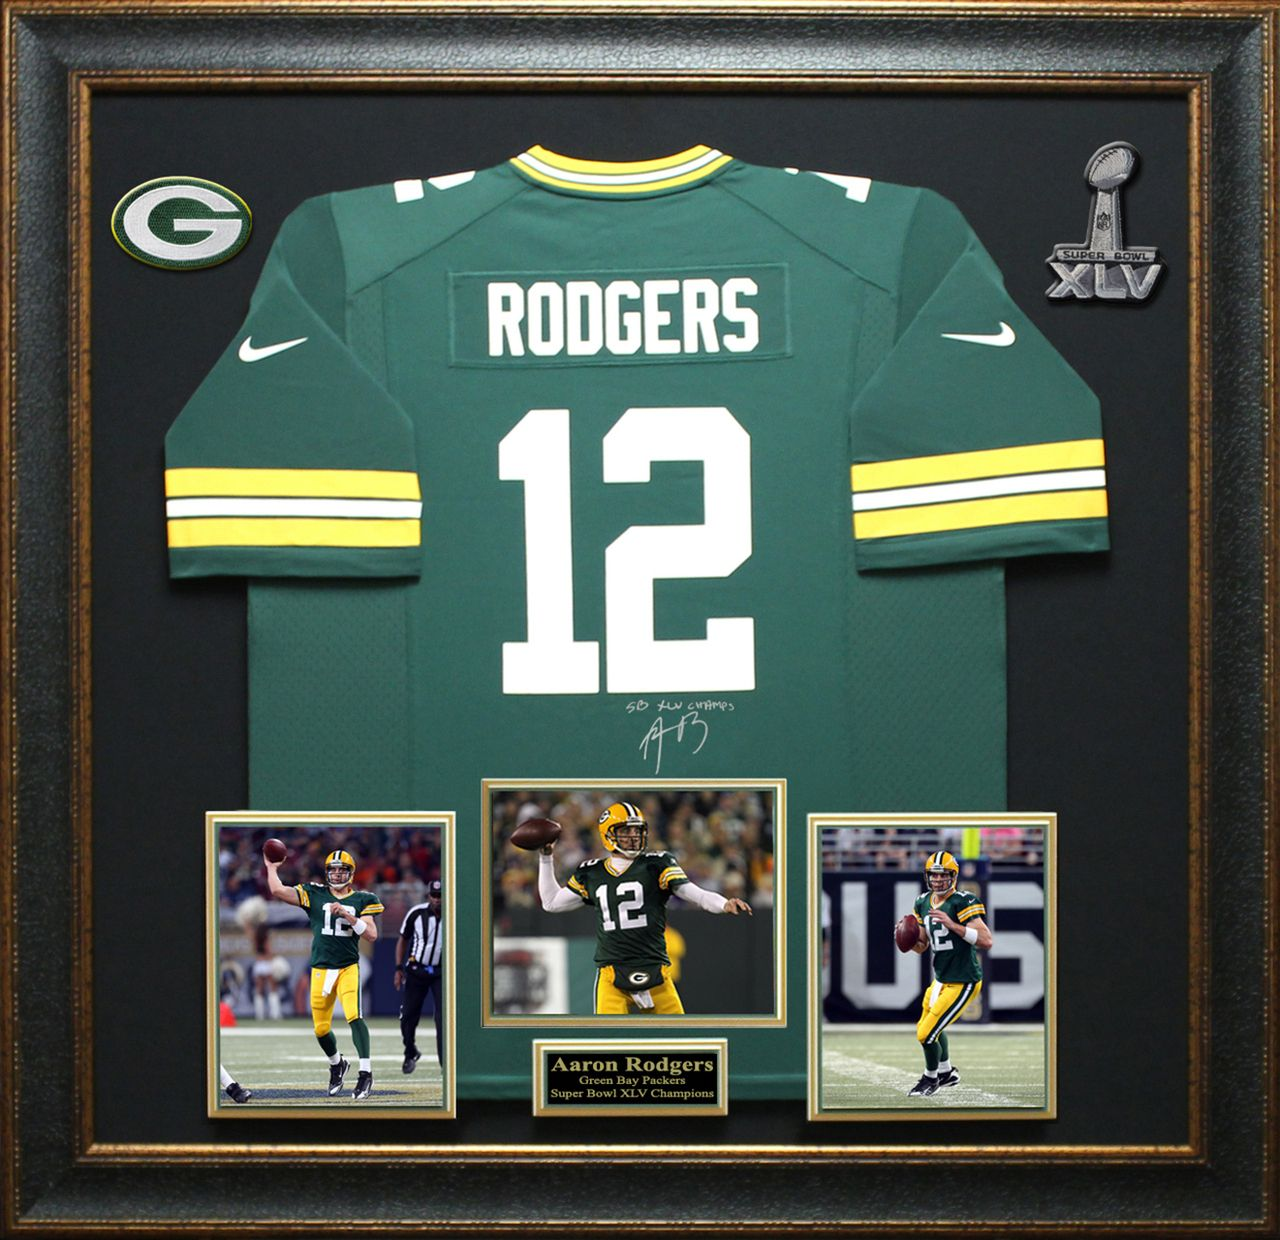 Aaron rodgers signed green bay packers jersey display